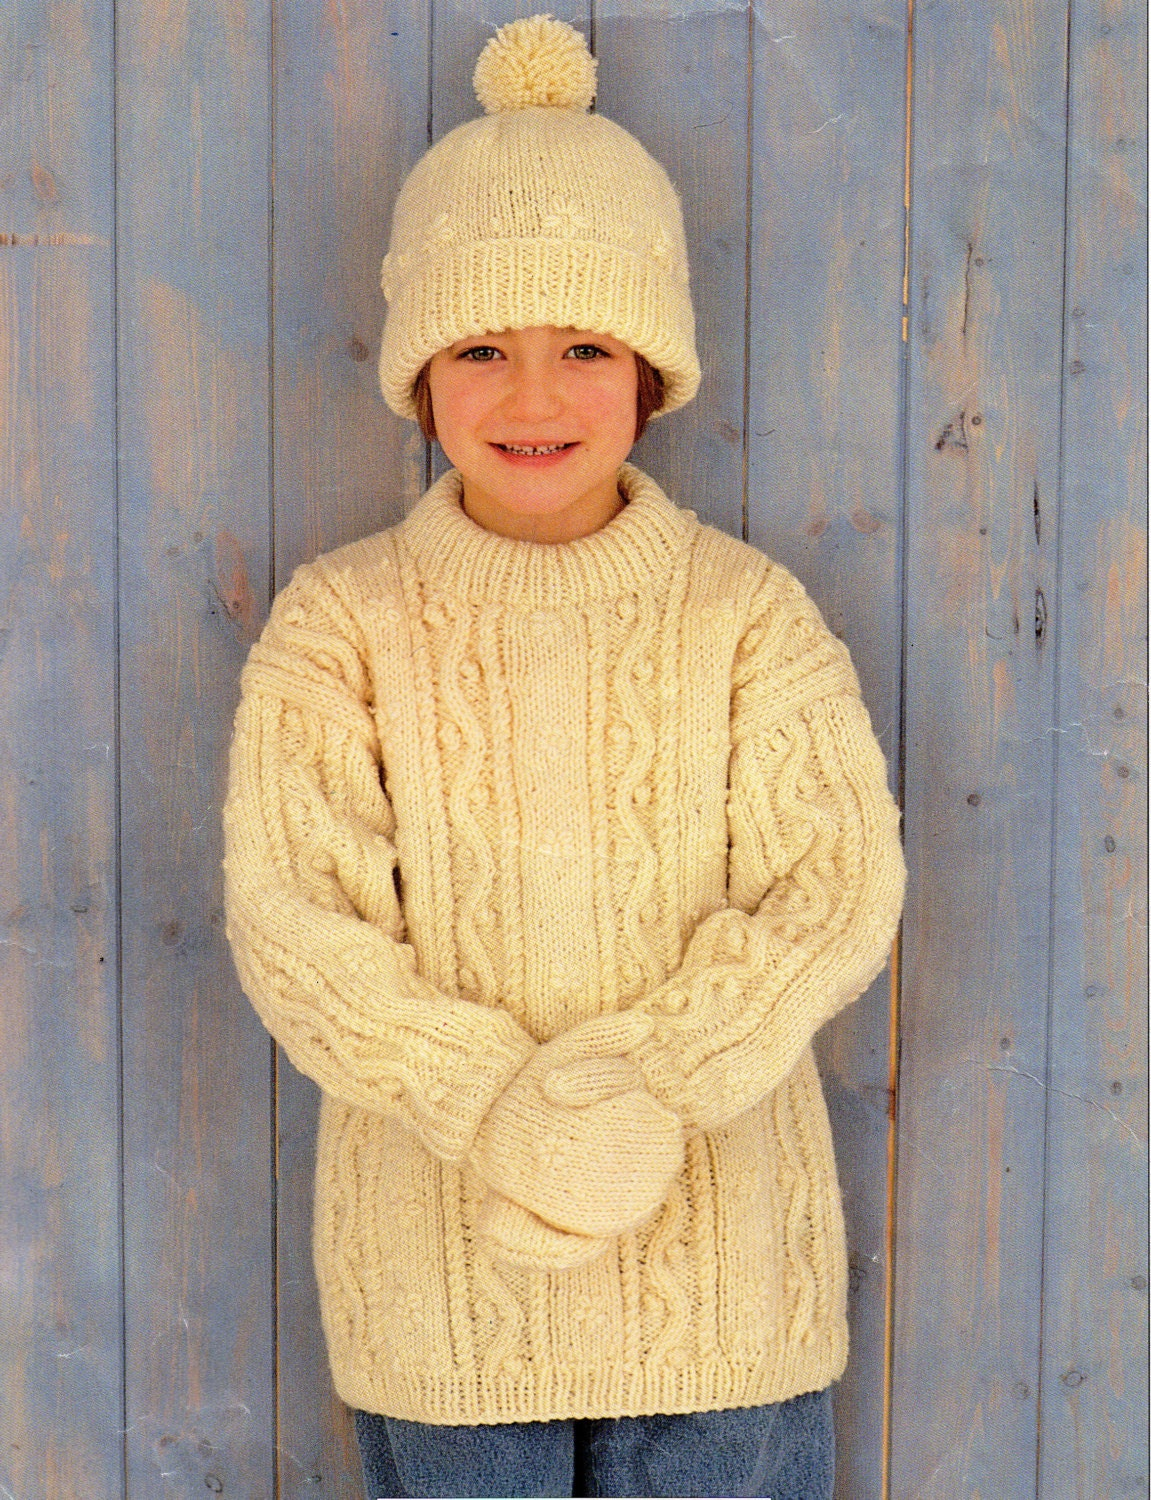 Childrens aran sweater knitting pattern childs aran sweater hat this is a digital file bankloansurffo Gallery